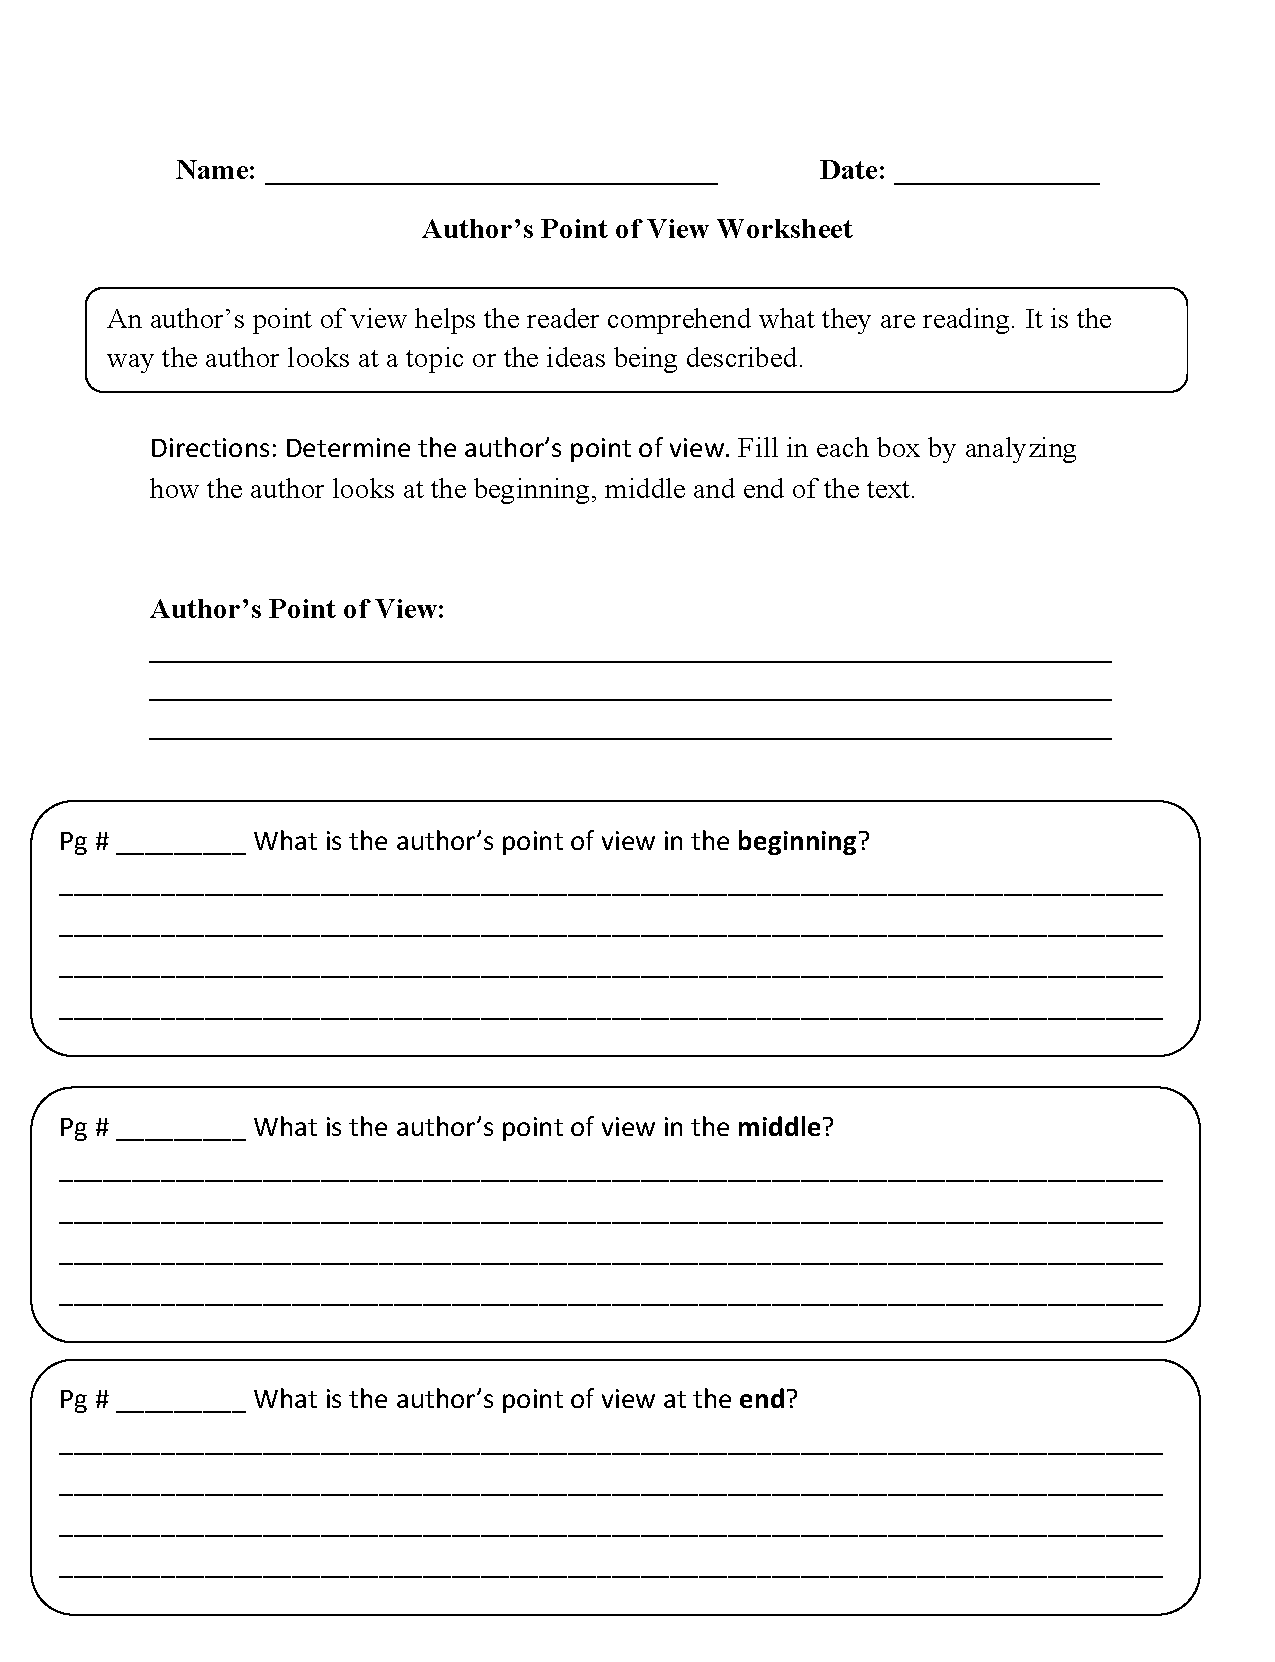 Proatmealus  Personable Englishlinxcom  Point Of View Worksheets With Luxury Point Of View Worksheets With Cute Tenths And Hundredths Worksheets Grade  Also Golden Ratio Worksheet In Addition Simple Machines Printable Worksheets And Multiplying By  Worksheet As Well As Angle Pairs Worksheets Additionally Activities Of Daily Living Worksheet From Englishlinxcom With Proatmealus  Luxury Englishlinxcom  Point Of View Worksheets With Cute Point Of View Worksheets And Personable Tenths And Hundredths Worksheets Grade  Also Golden Ratio Worksheet In Addition Simple Machines Printable Worksheets From Englishlinxcom